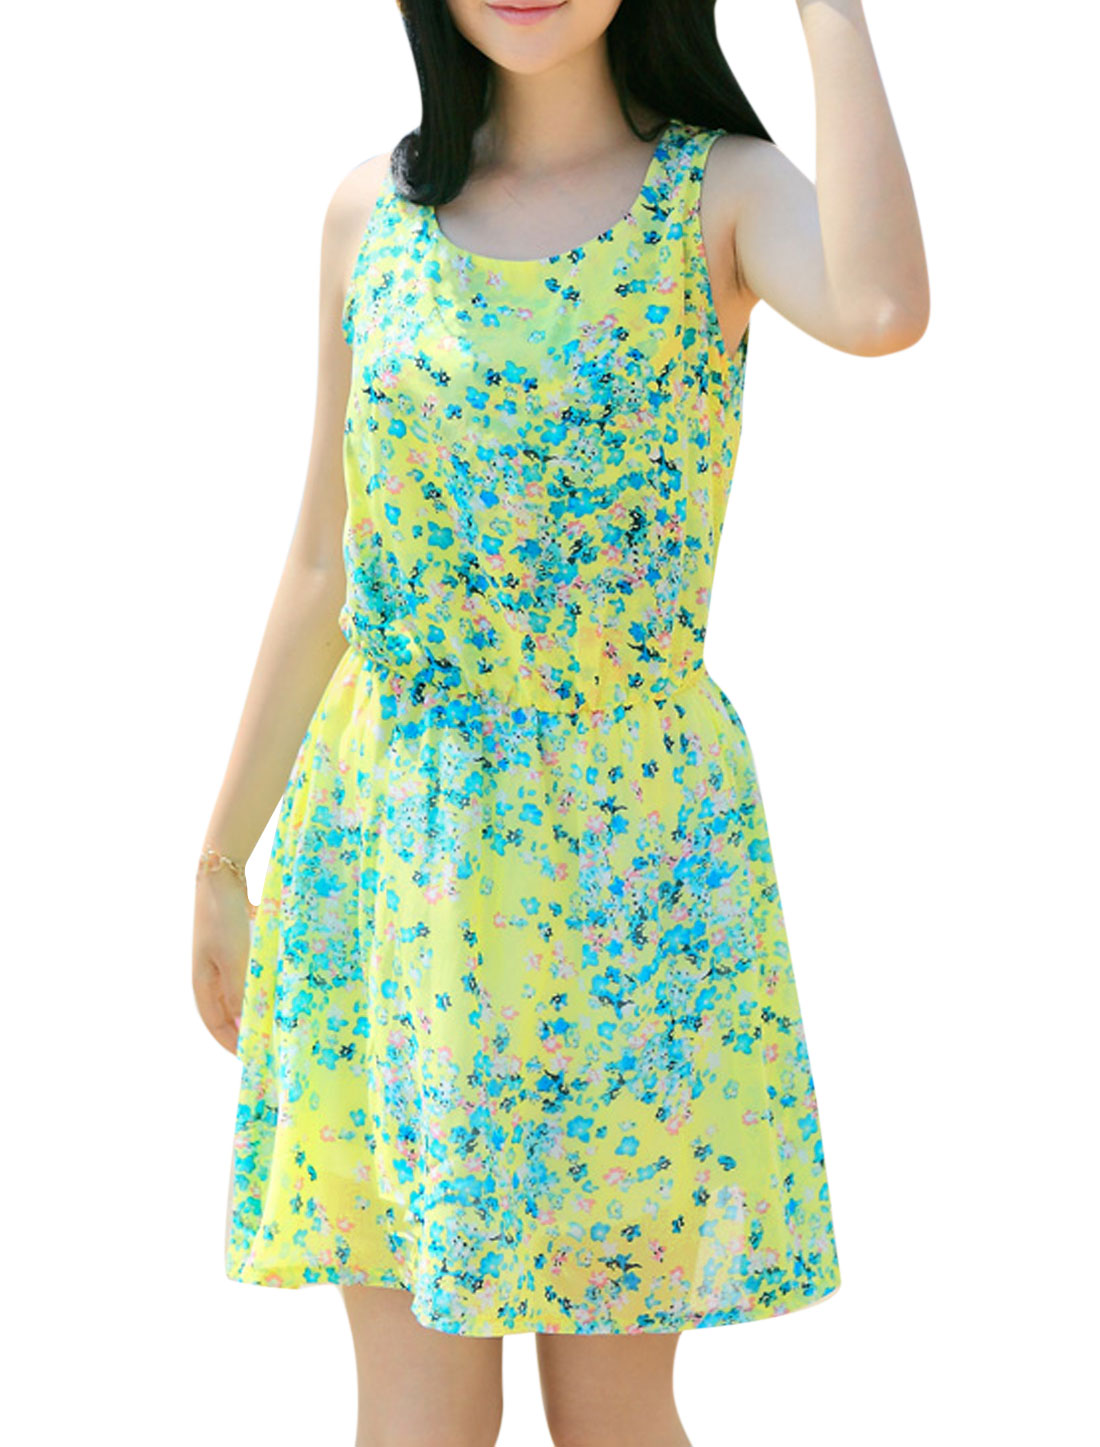 Lady Elastic Waist Floral Prints Lining Skater Dress Green Yellow S